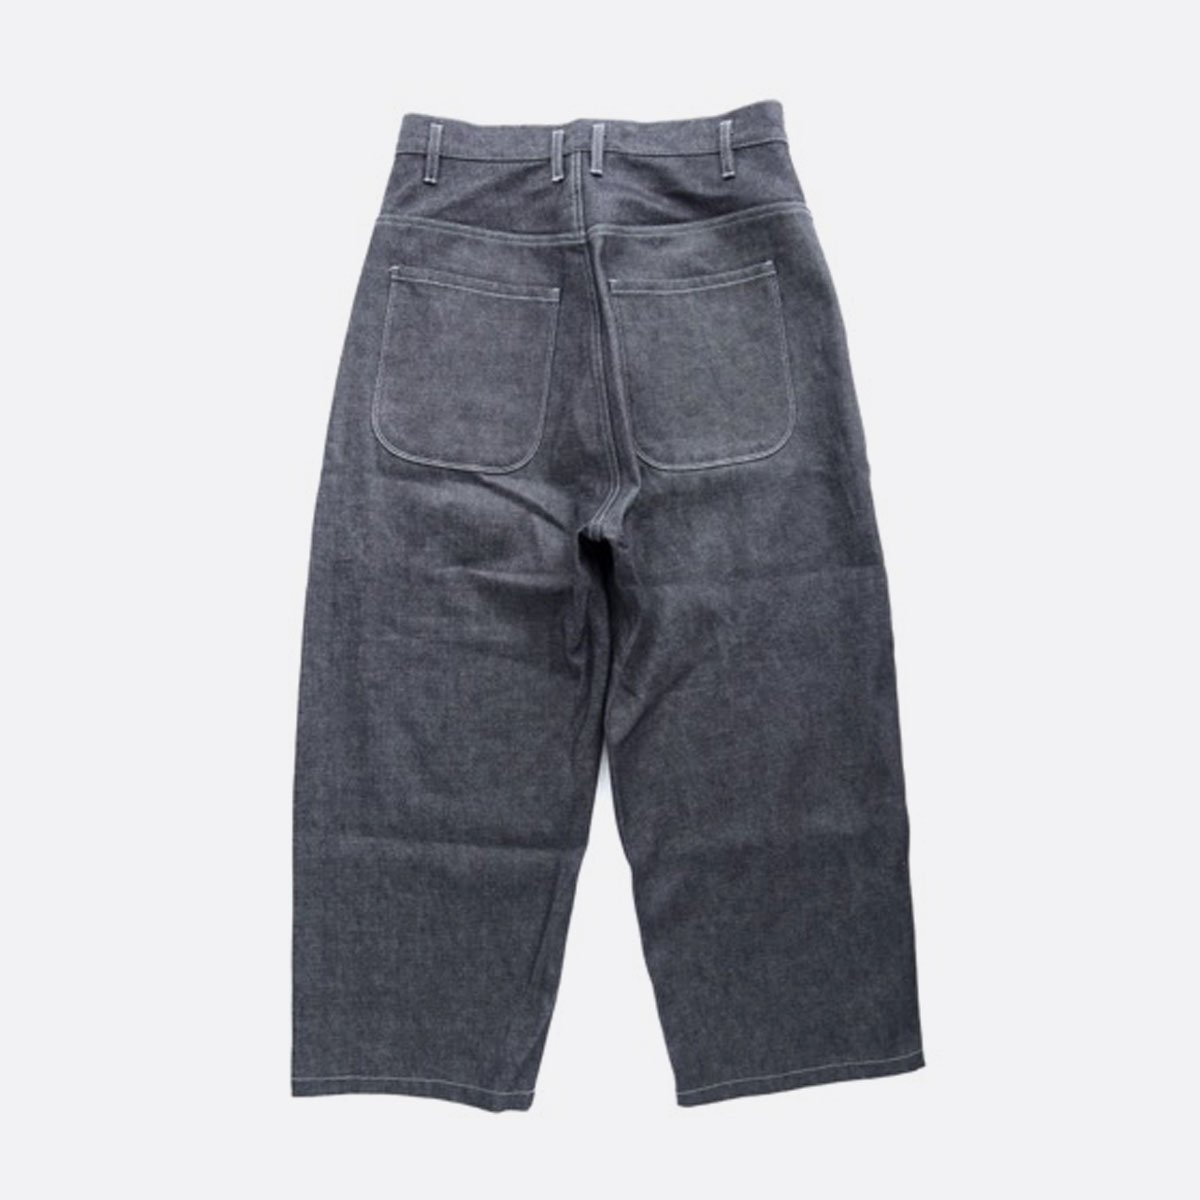 FIRMUM SUPIMA UNEVEN YARN BUGGY STRAIGHT SELVEDGE DENIM  (INDIGO)2